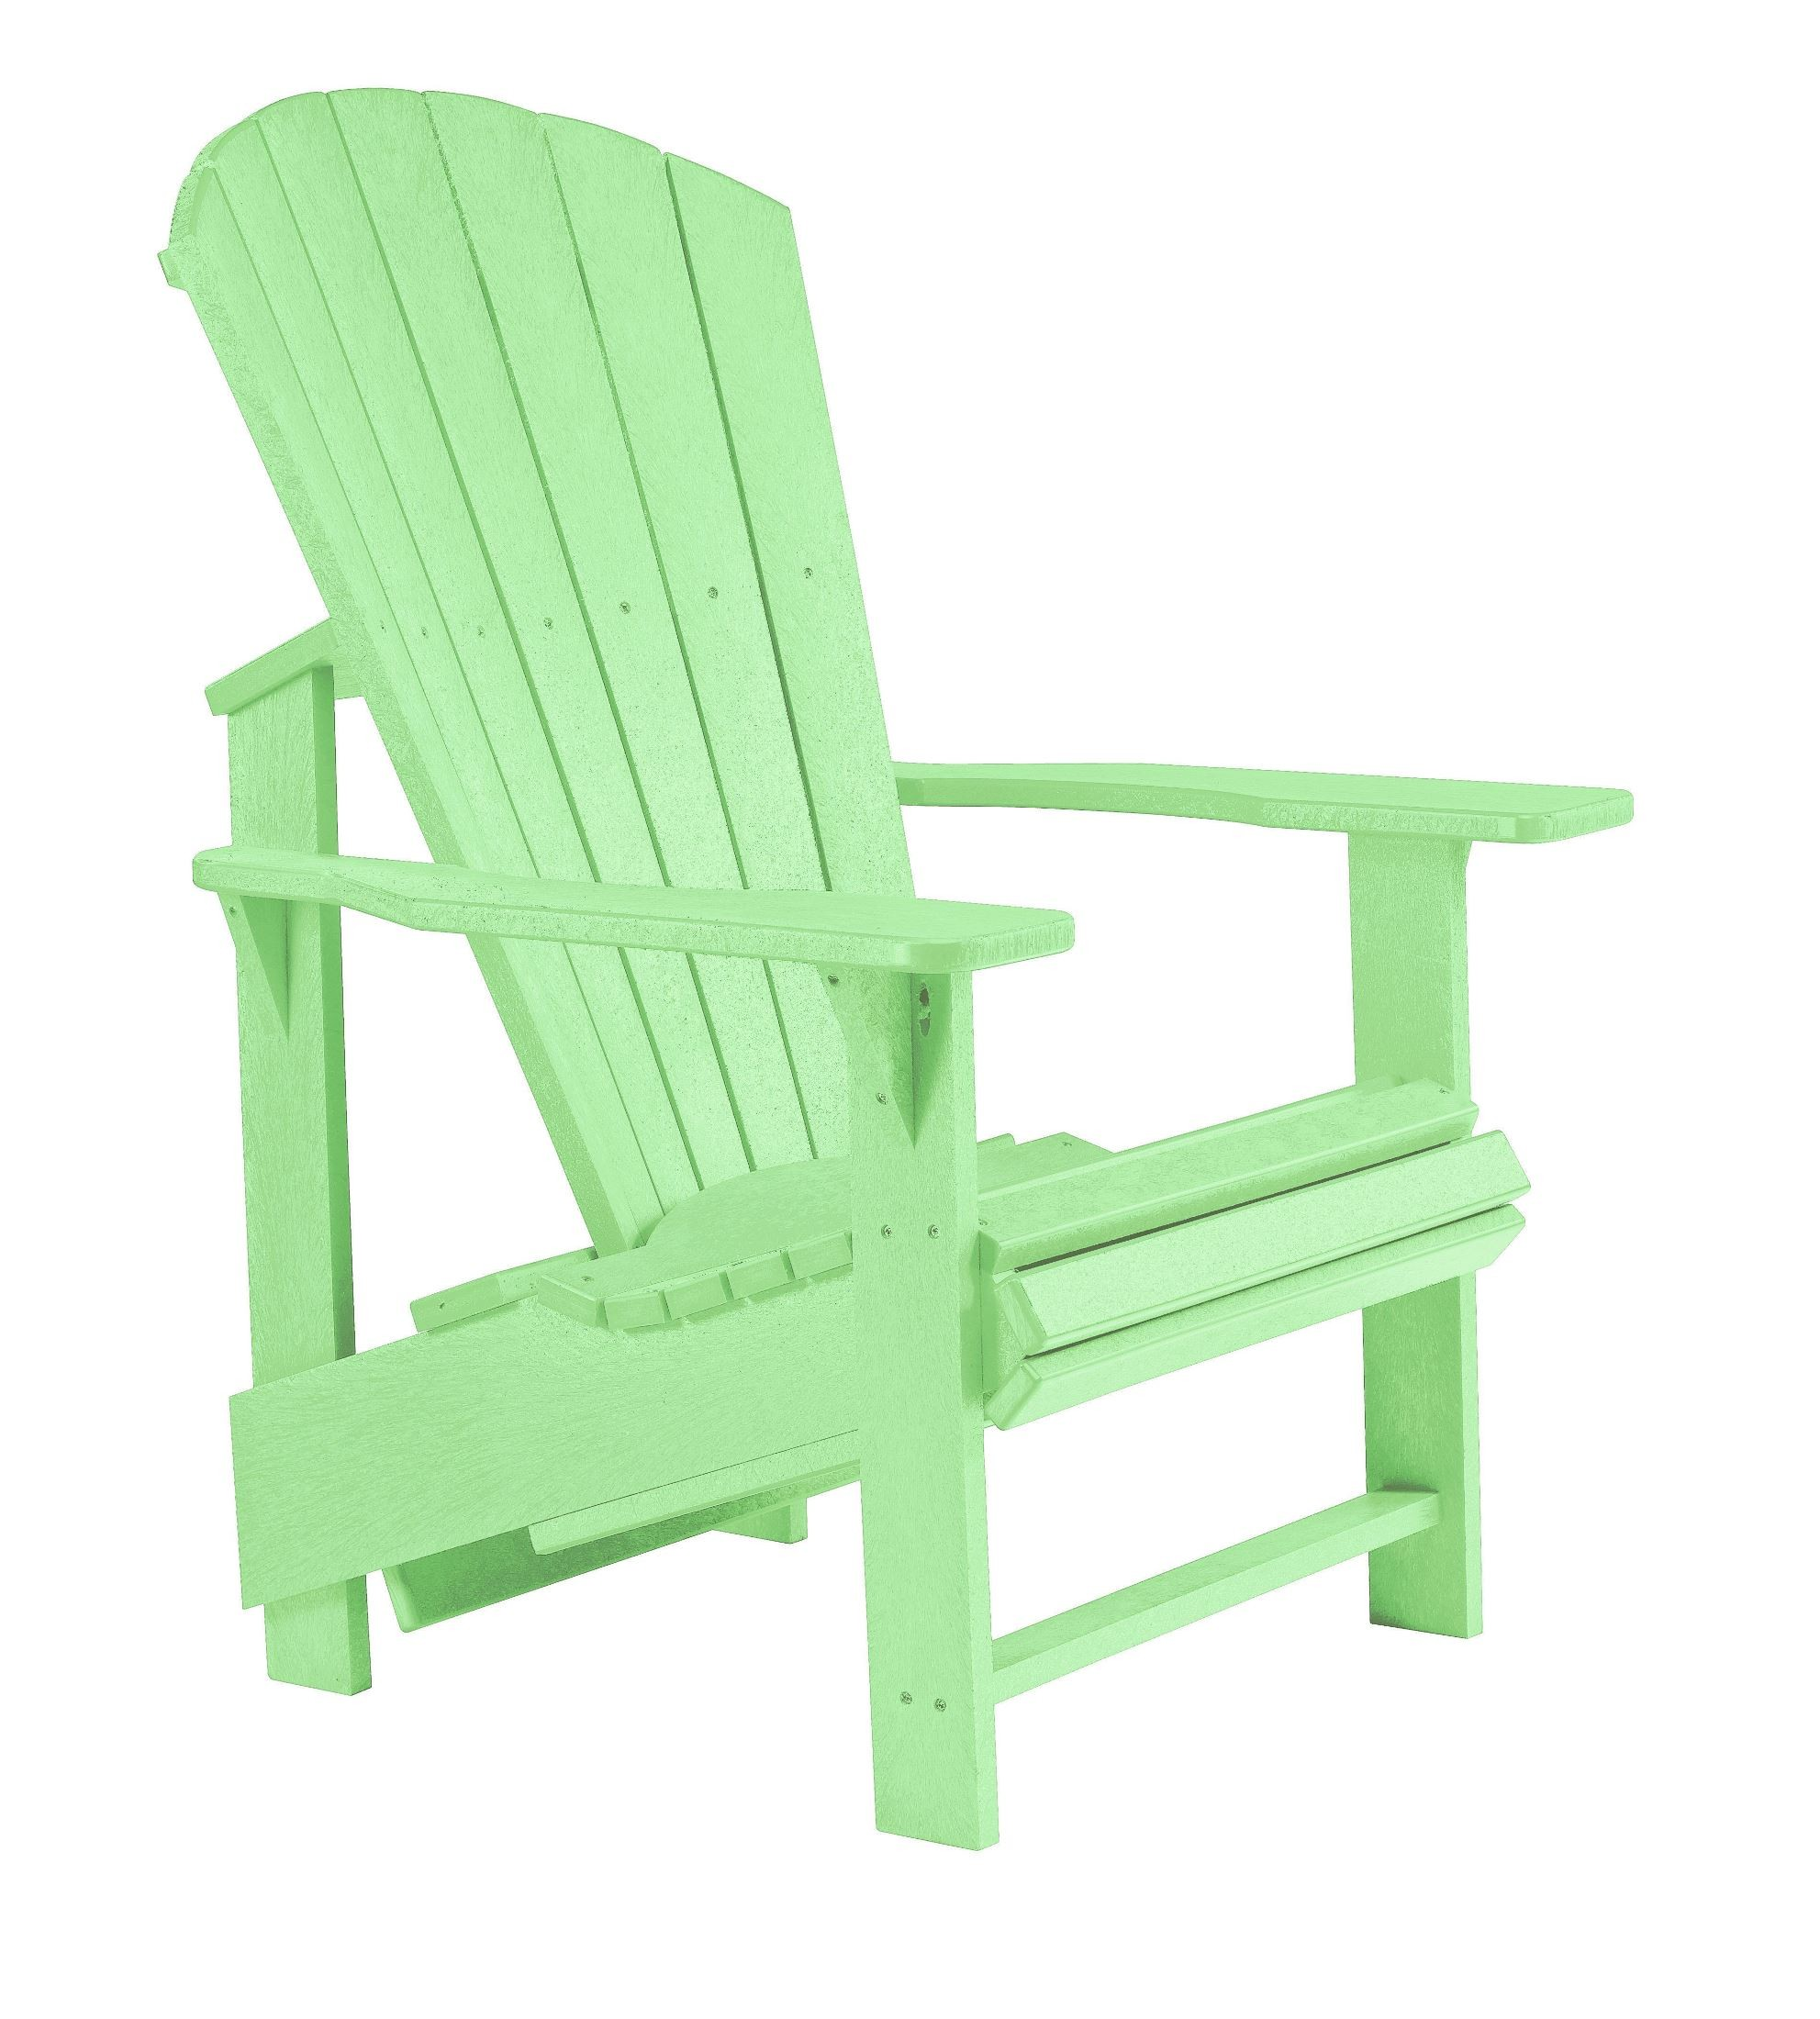 Generations lime green upright adirondack chair from cr plastic c03 15 coleman furniture - Green resin adirondack chairs ...